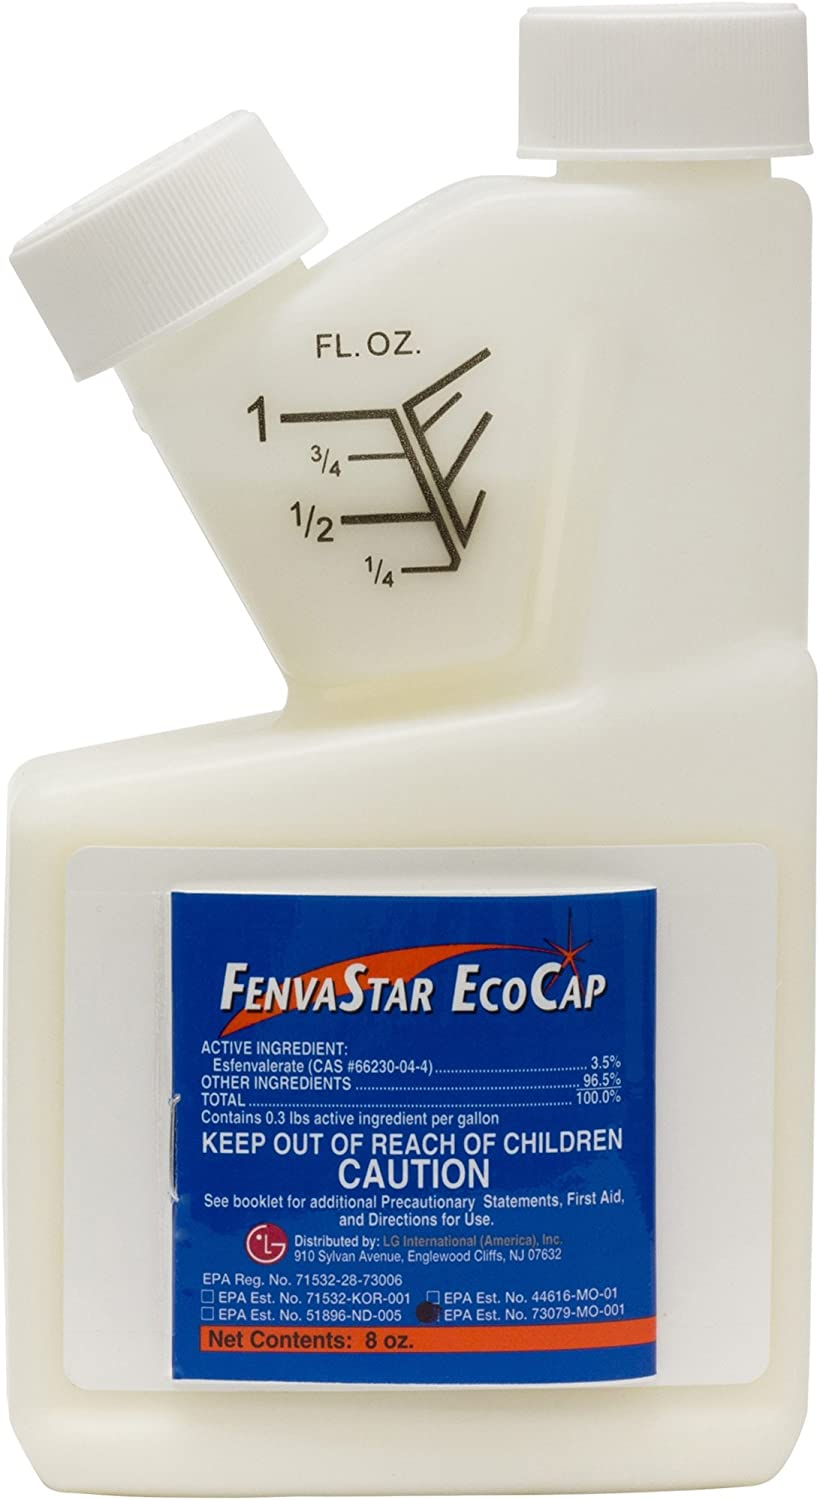 FenvaStar EcoCap - 8 oz.-Bed Bugs,carpenter Bees,Stink Bug,ants,spiders,Professional Pest Control Product